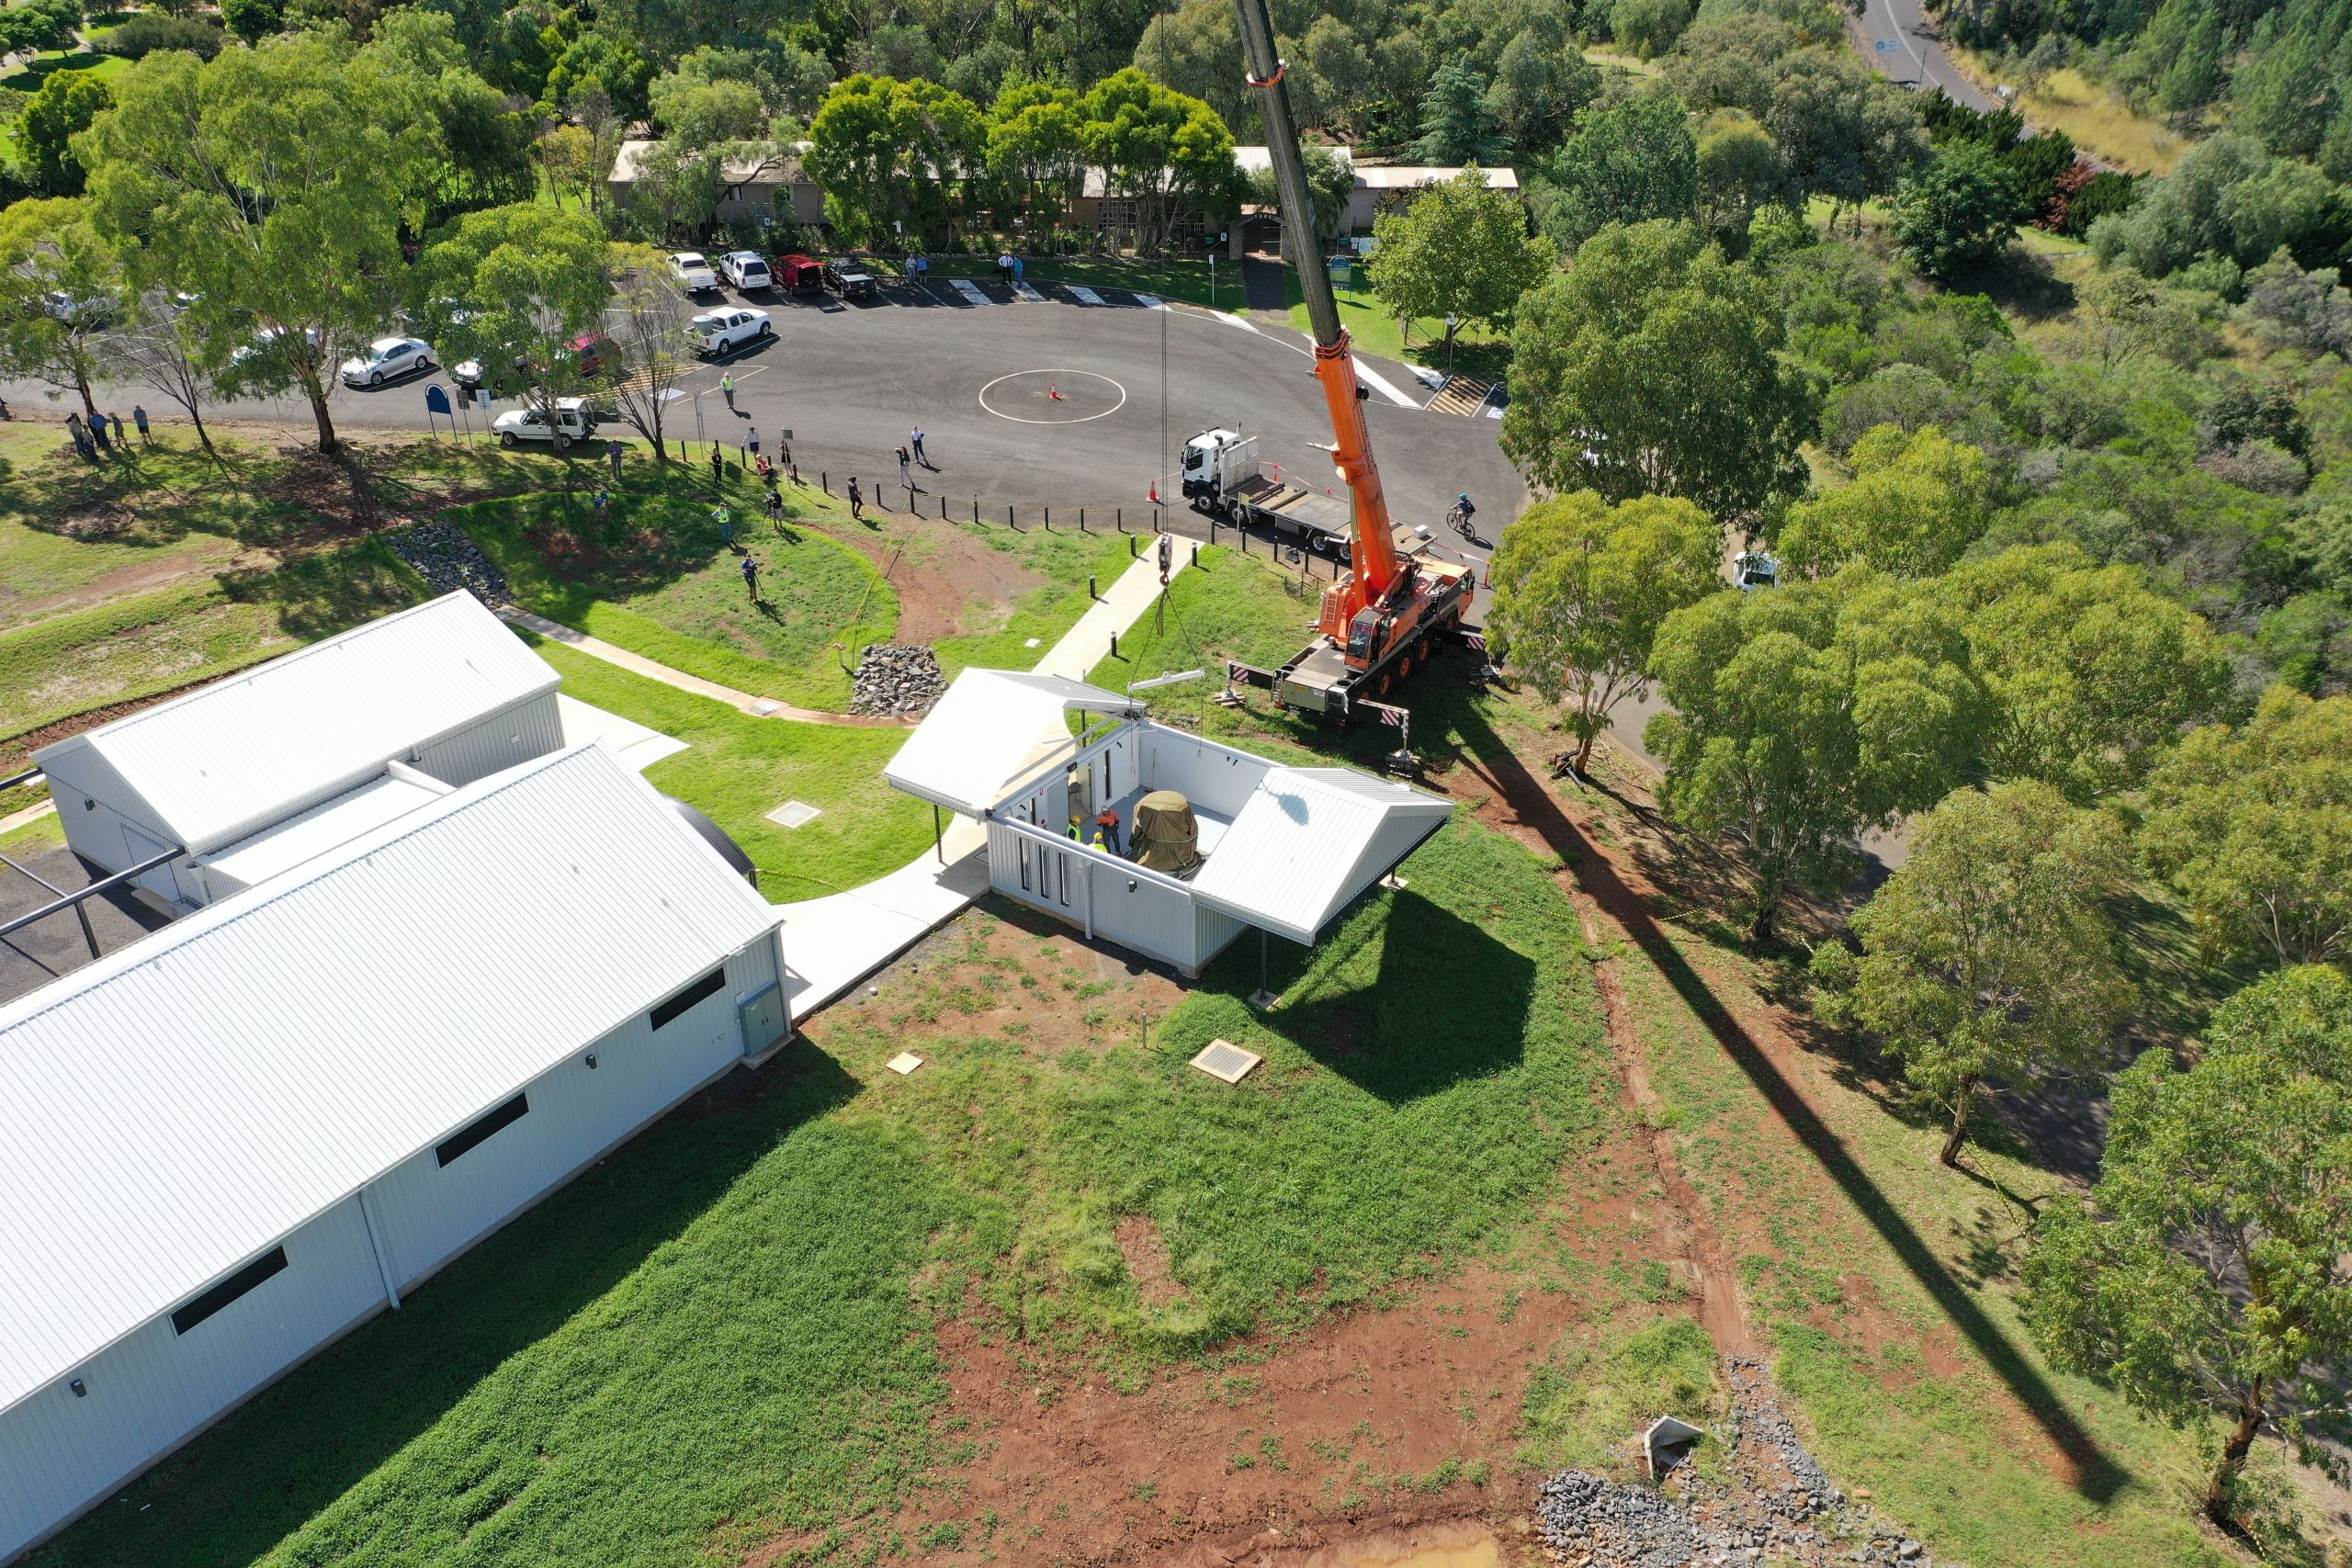 The Hewitt Telescope lifted in via crane on Wednesday 10 March